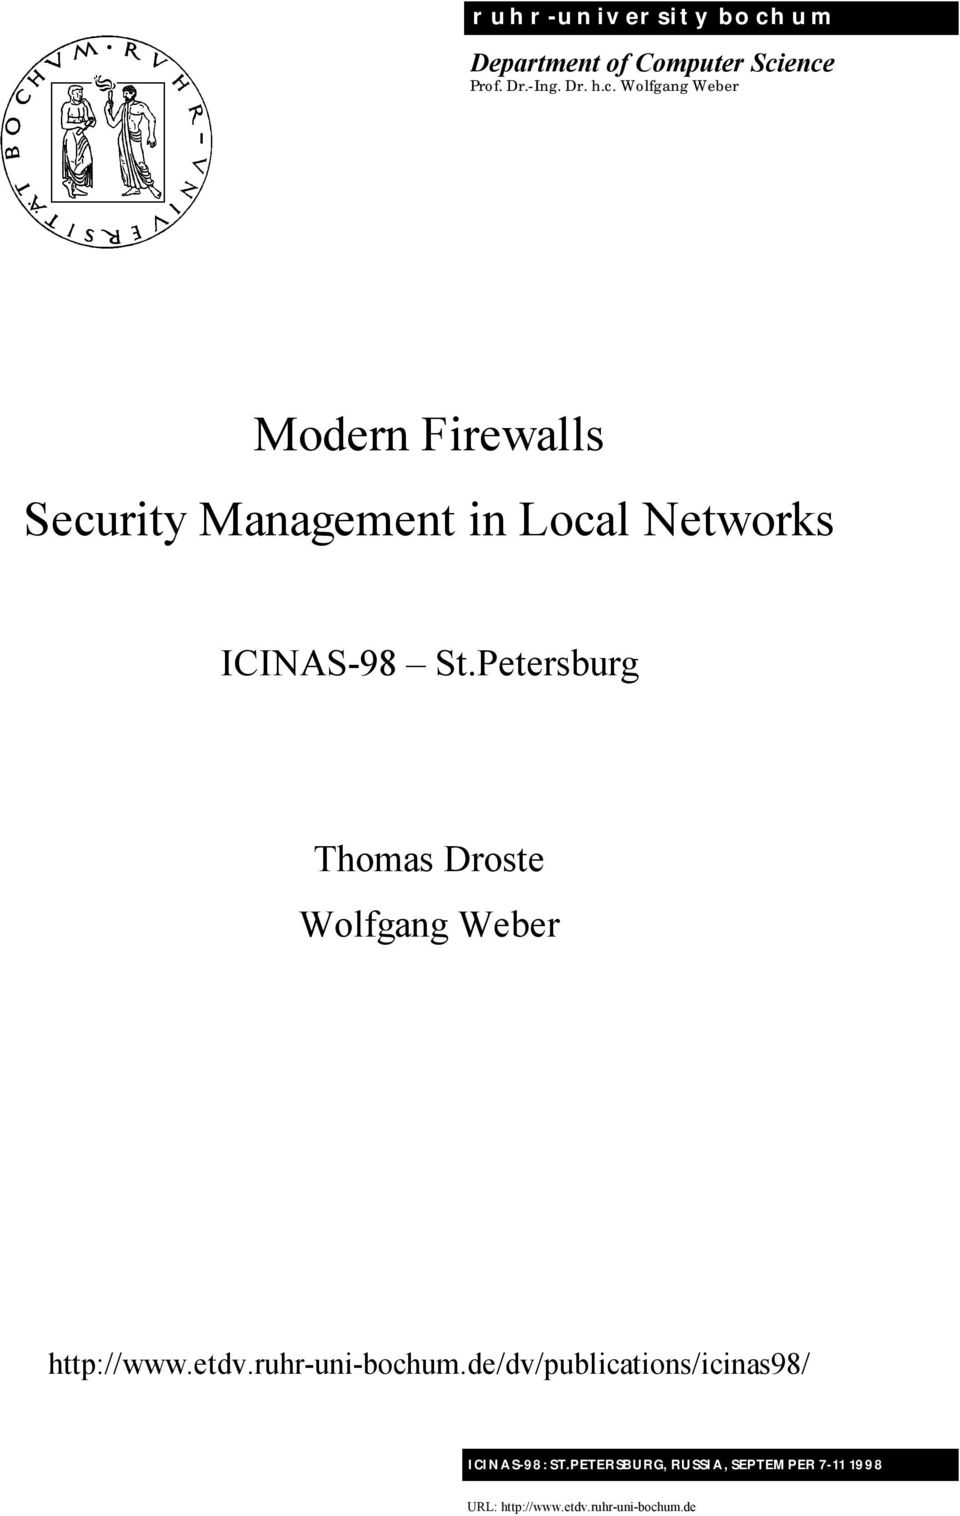 ence Prof. Dr.-Ing. Dr. h.c. Wolfgang Weber Modern Firewalls Security Management in Local Networks ICINAS-98 St.